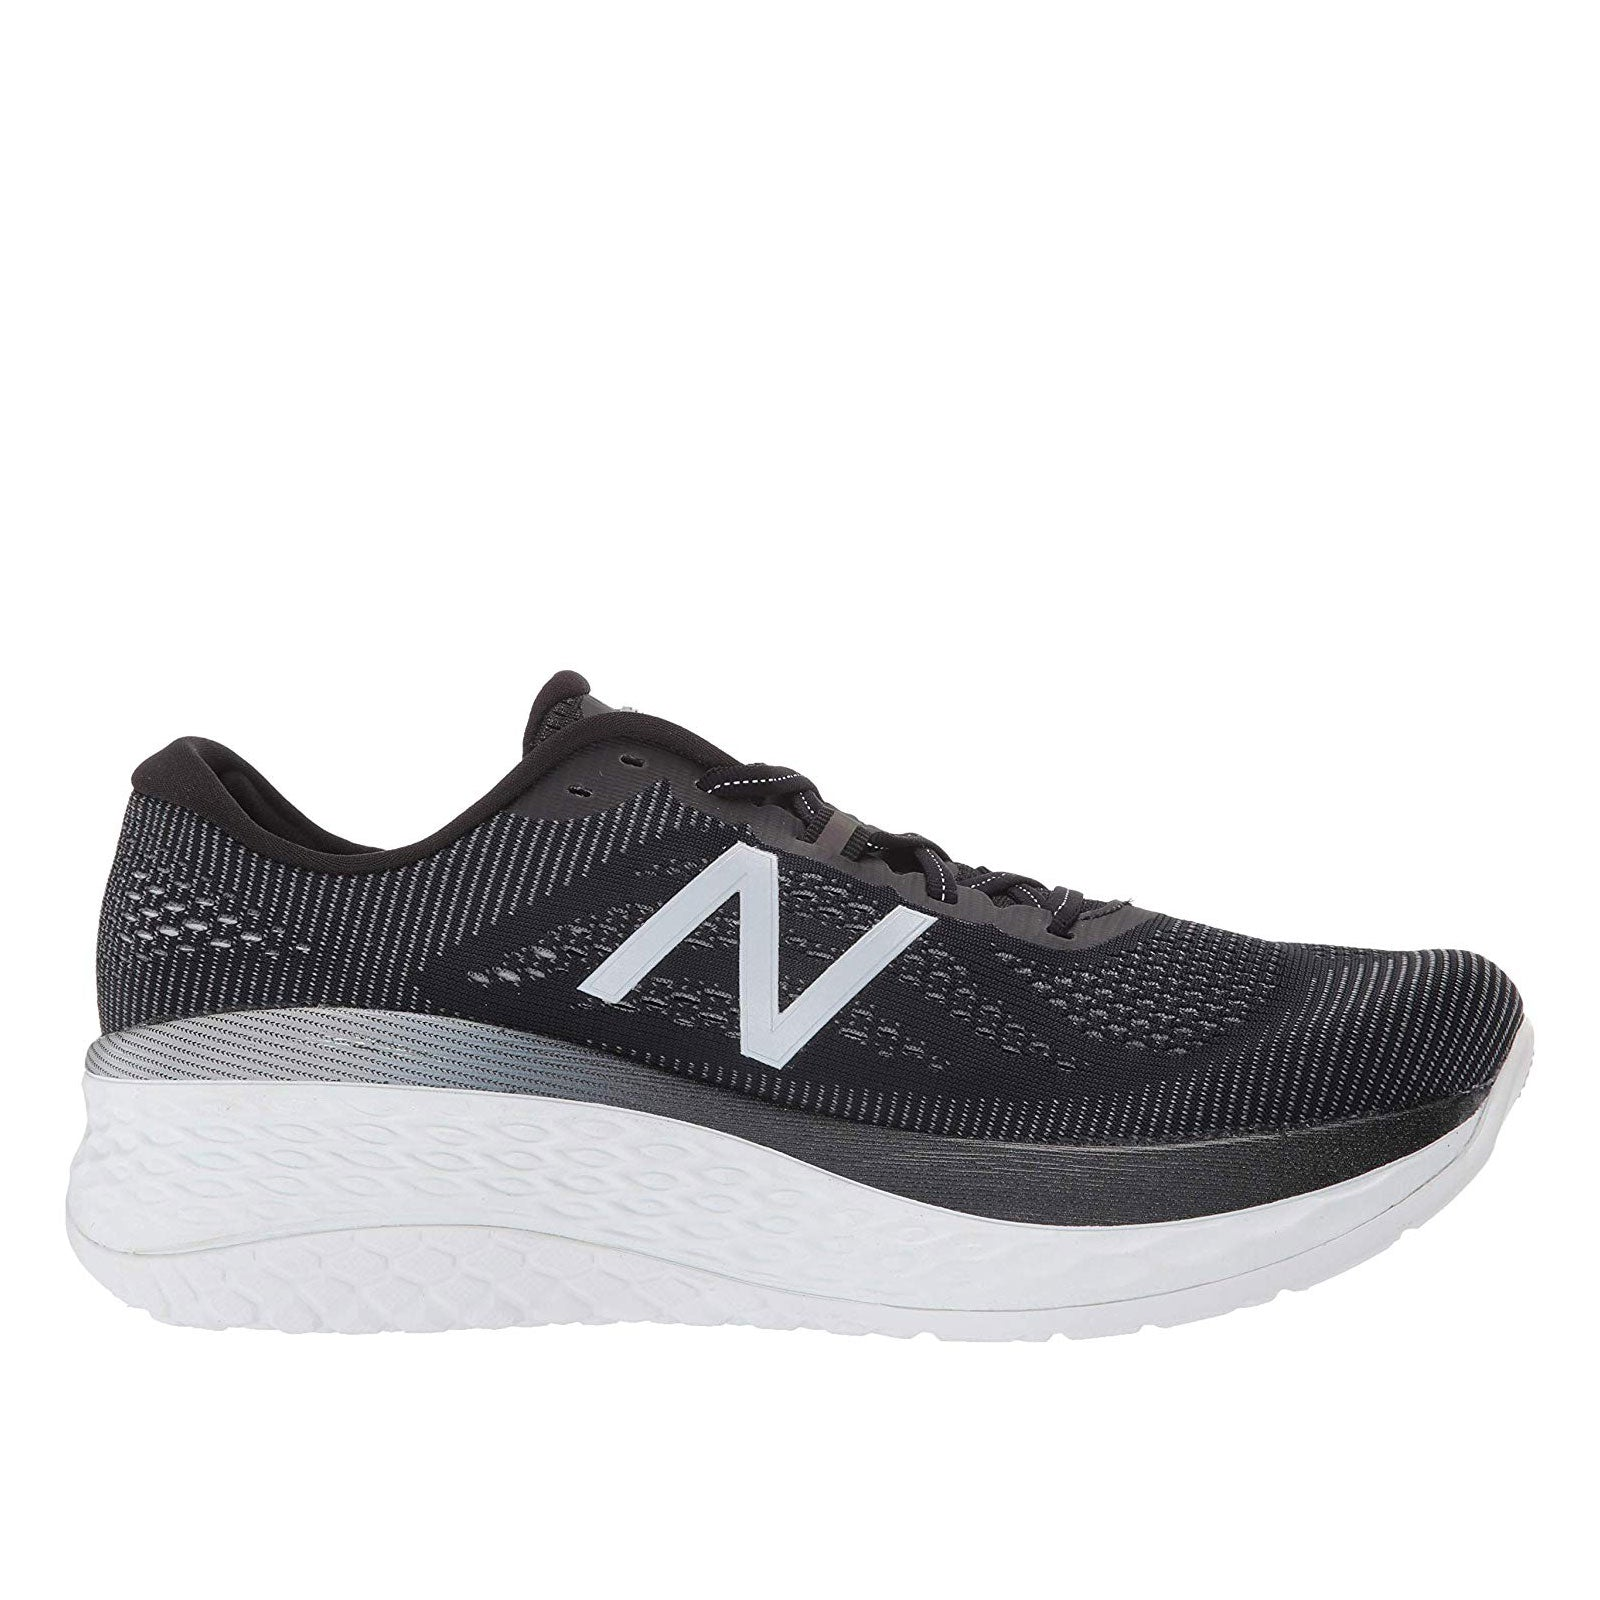 fcdeb51c81 New Balance Running Course Fresh Foam More